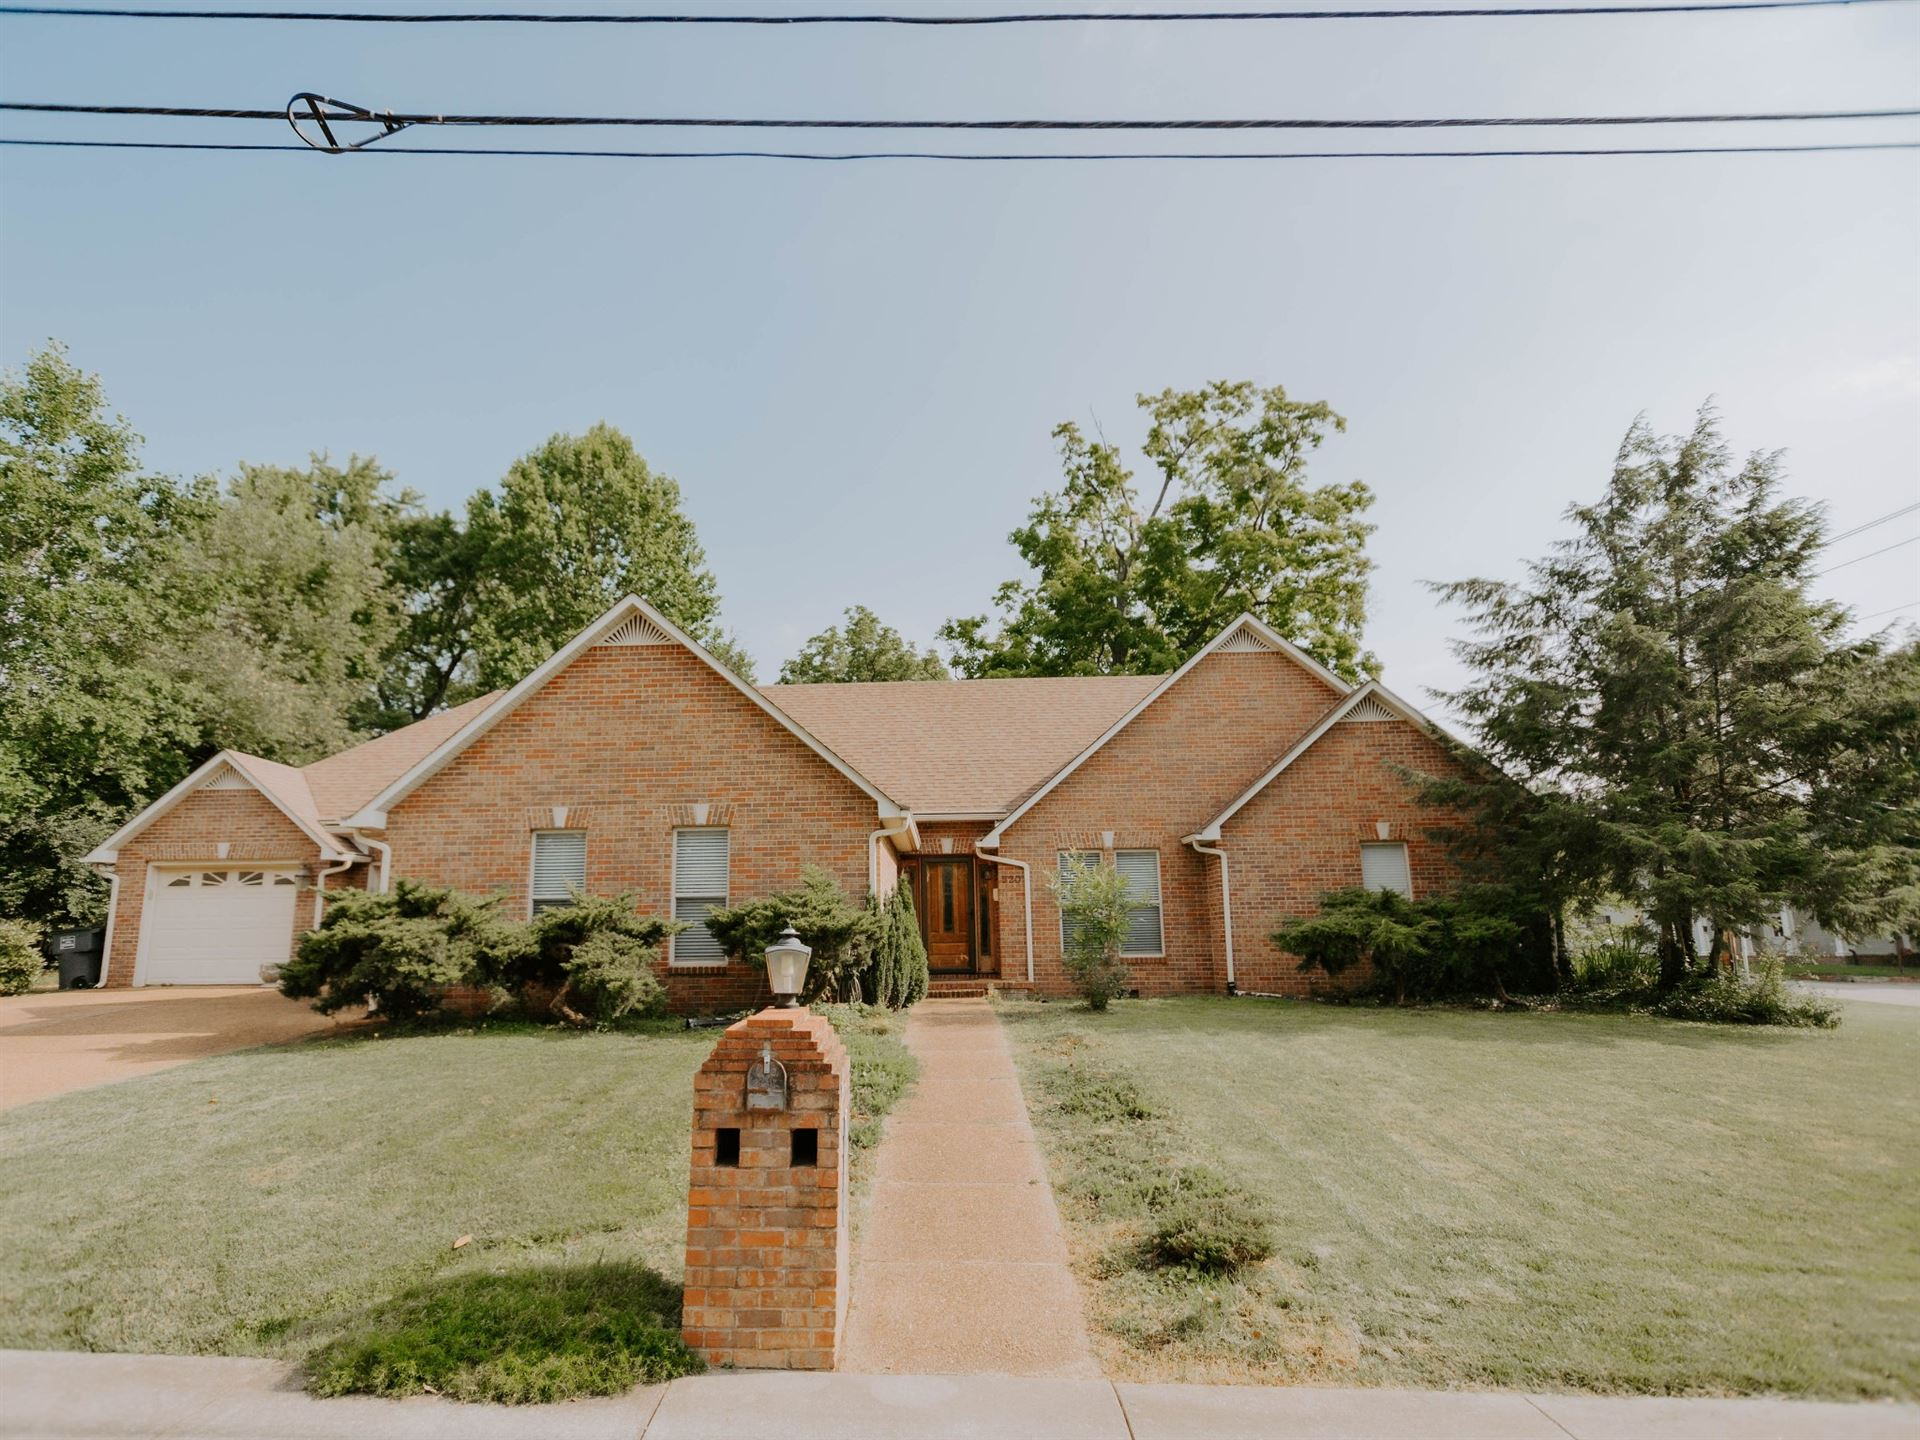 520 Freeze St, Cookeville, TN 38501 - MLS#: 2259005